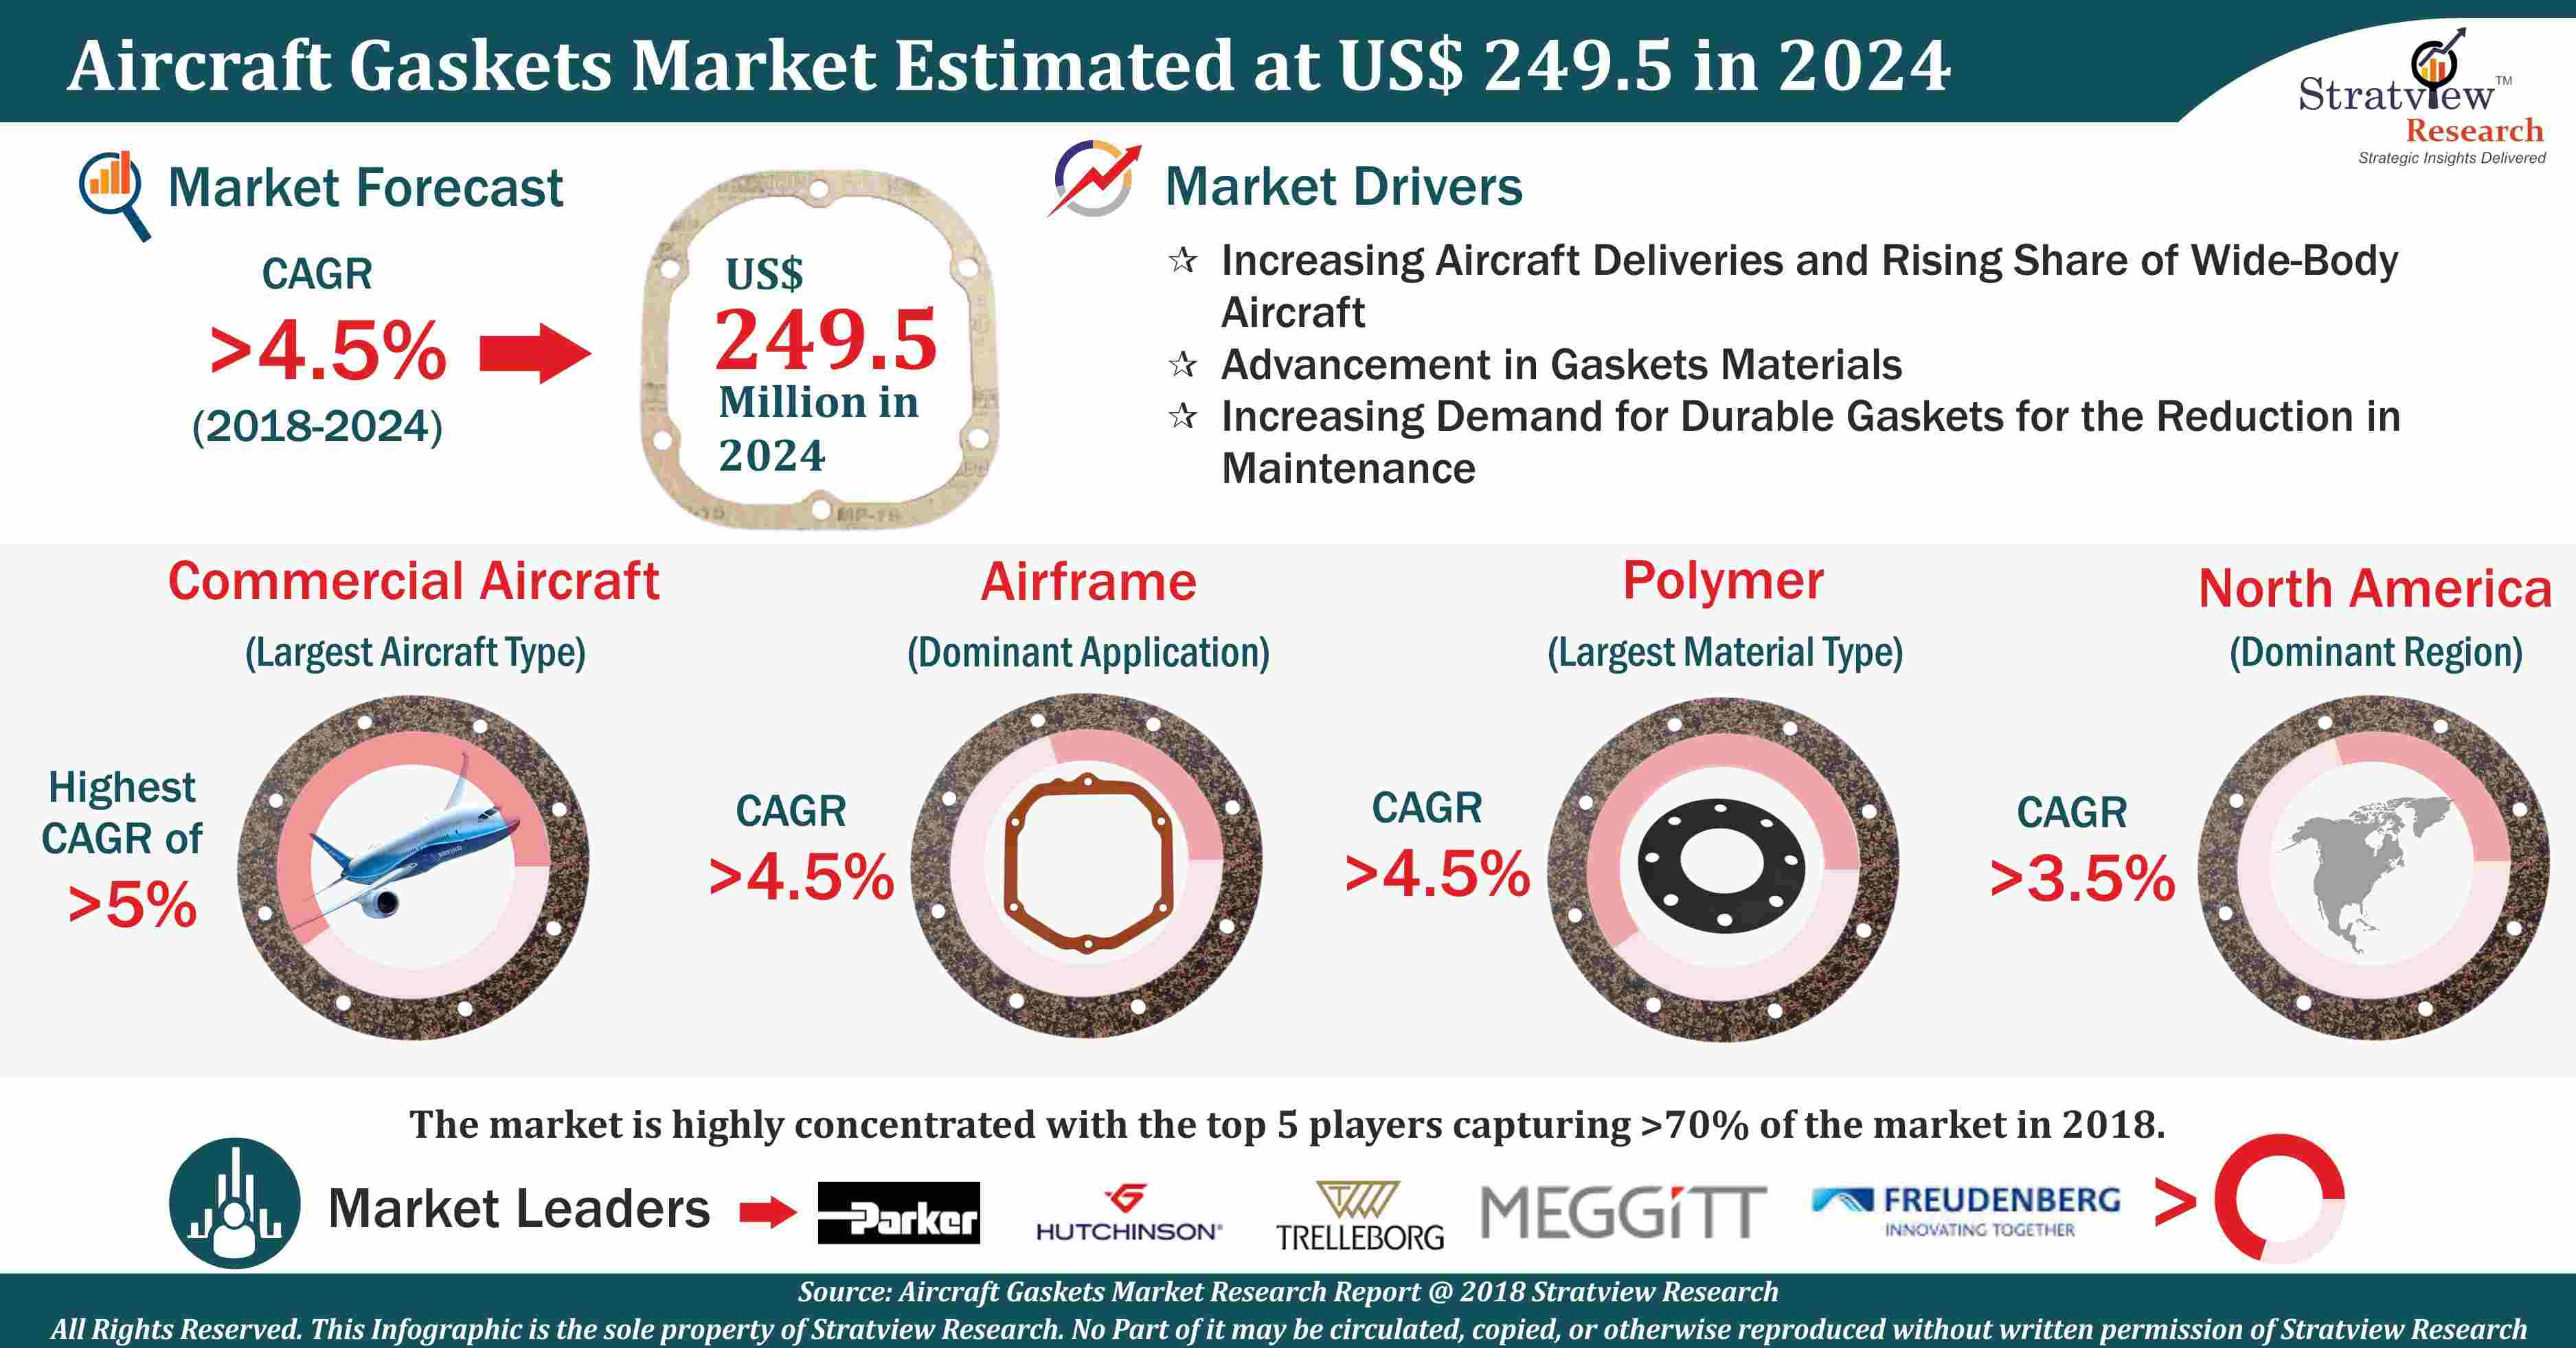 Aircraft Gaskets Market Analysis